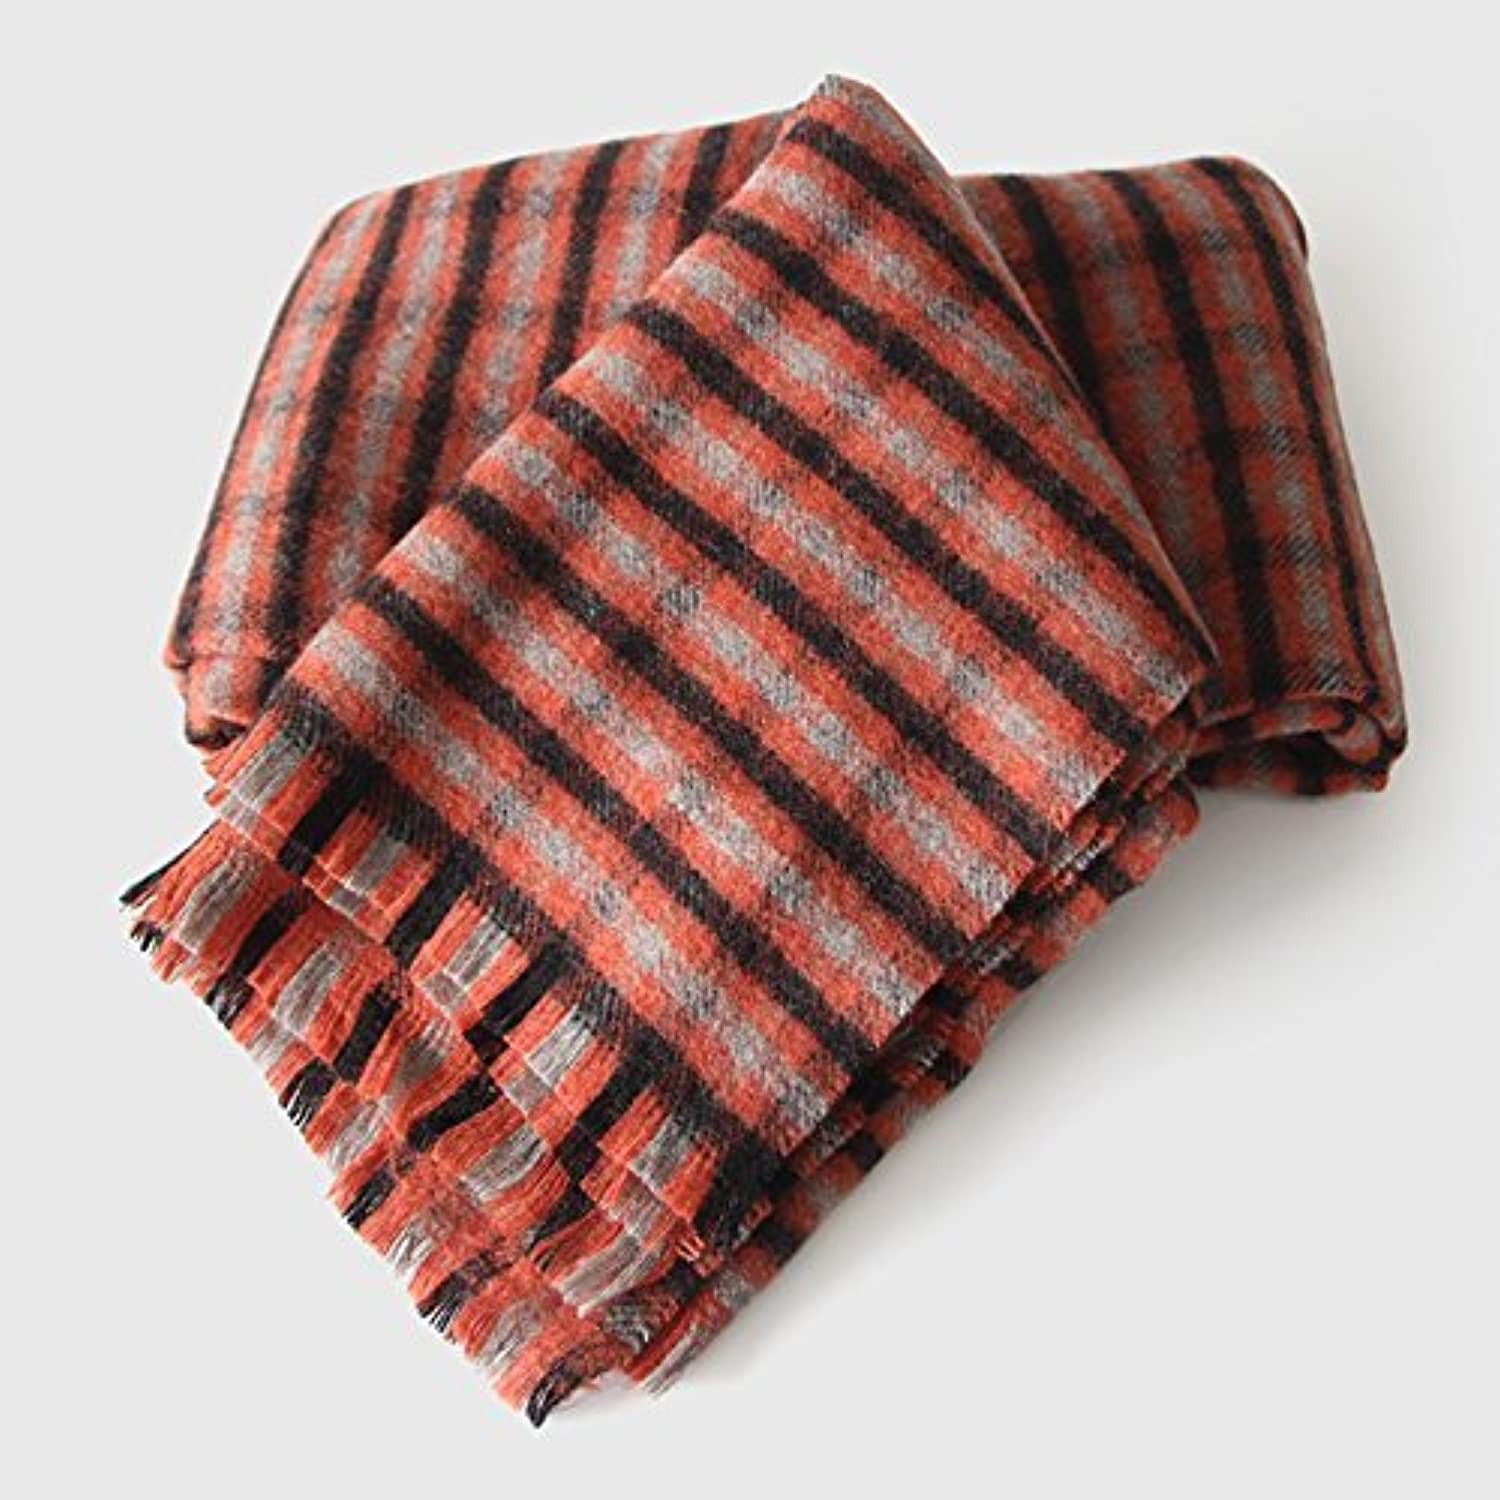 SED ScarfFemale Winter Scarf Thick Warm AllMatch Plaid Scarf Shawl Imitation Cashmere Scarf Female Autumn and Winter Korean Students Knitted Shawl Long